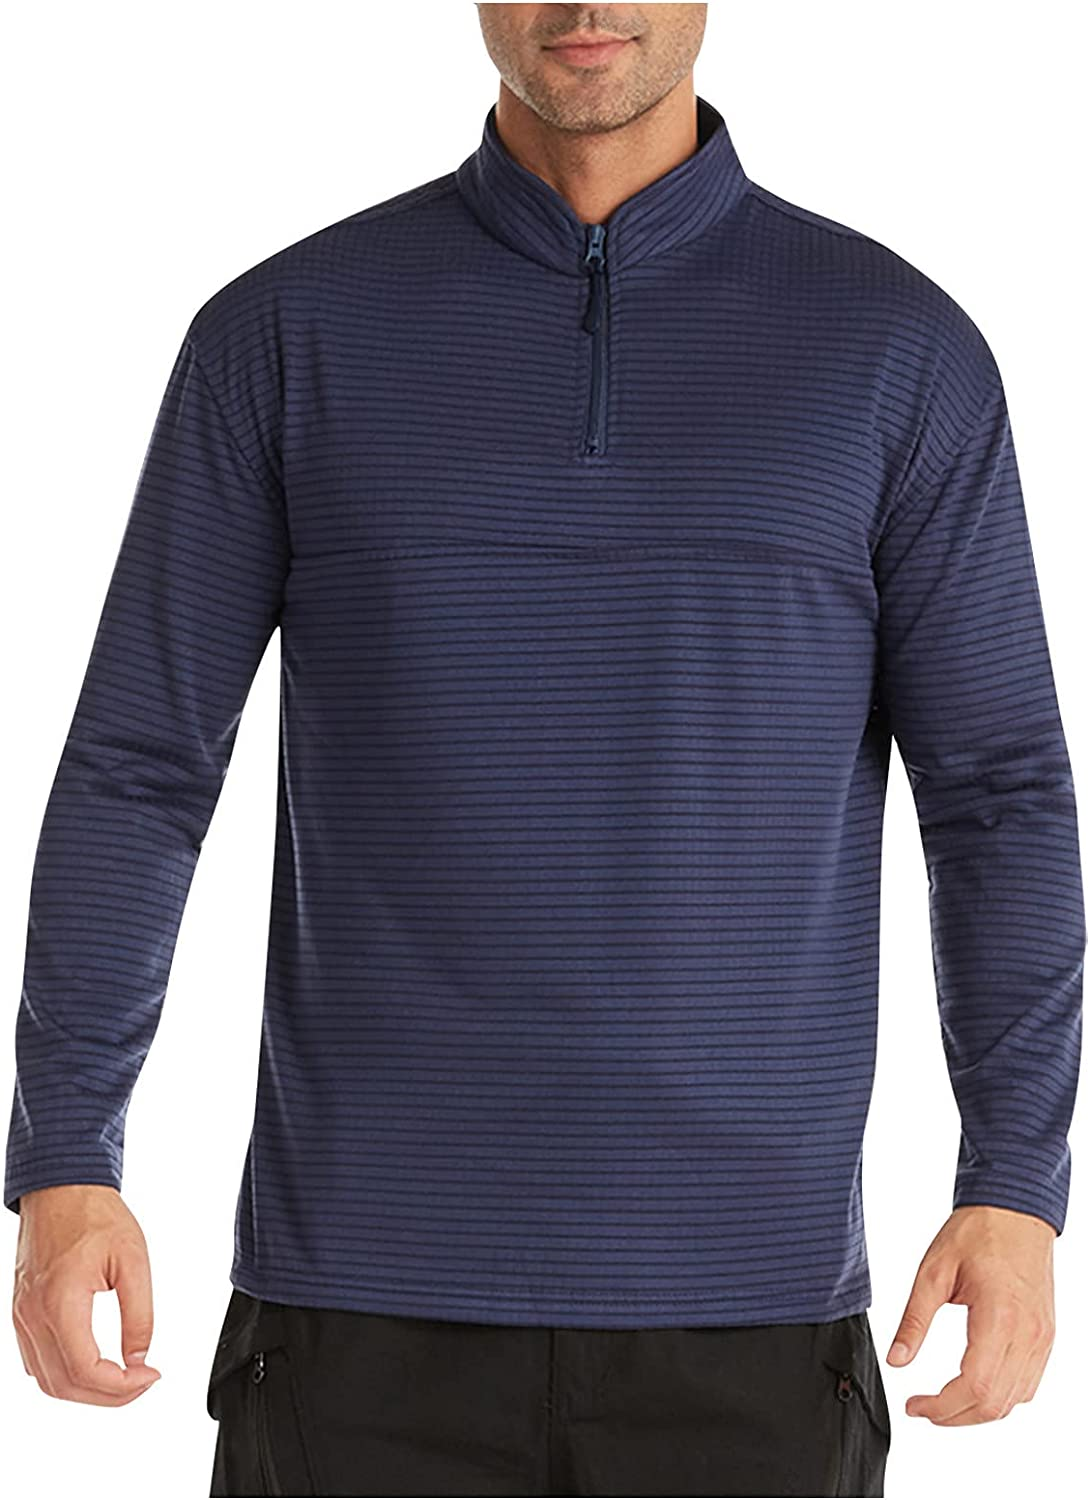 Men's Long Sleeve Fleece Thermal Blouse Zipper Stand Collar Solid Color Casual and Comfortable Soft Tops